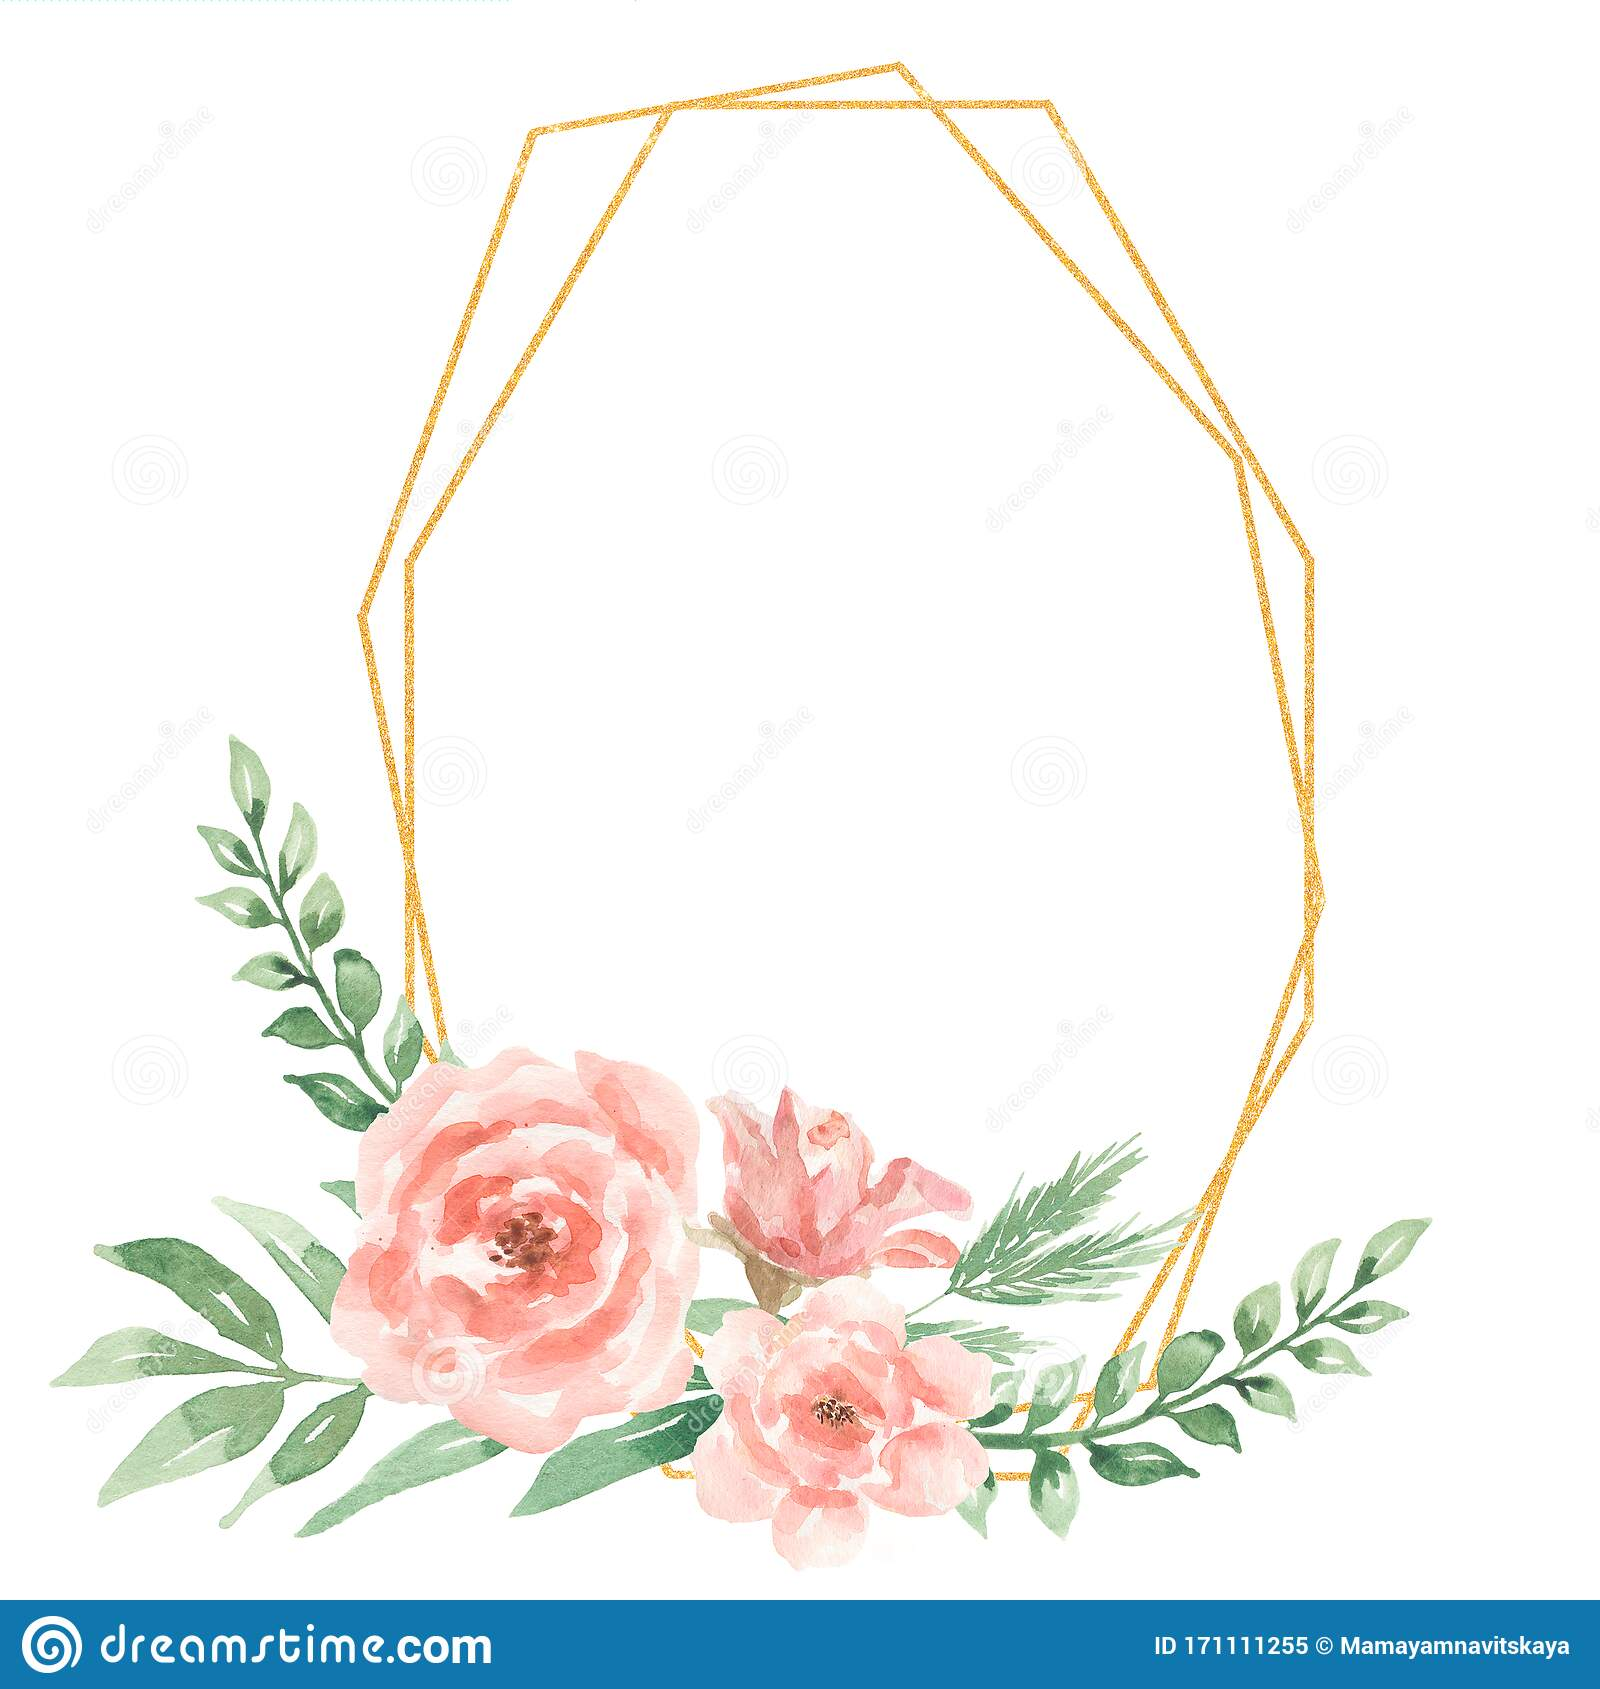 Watercolor Greenery And Peony Flowers Wreath Clipart Geometric Frame Spring Floral Wreath Wedding Invits Cards Gift Modern Stock Illustration Illustration Of Bouquet Greenery 171111255